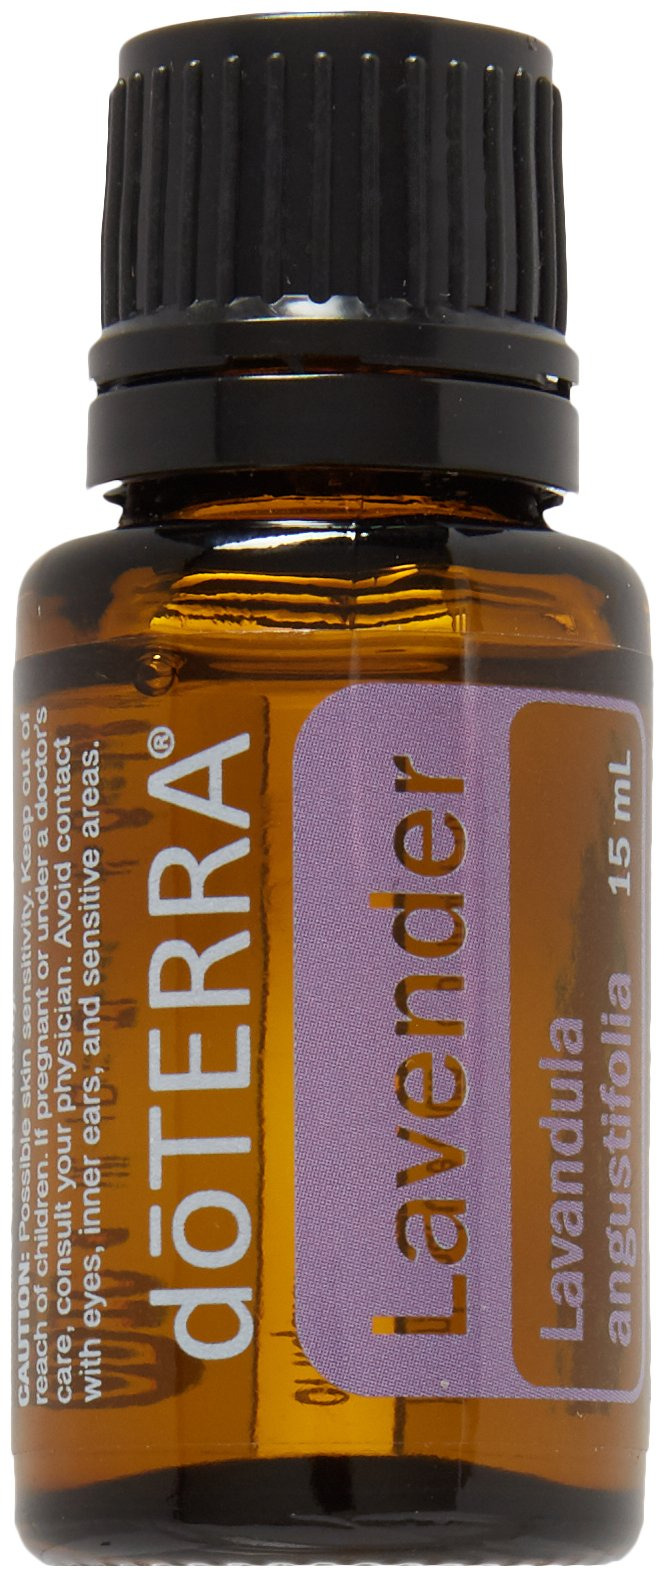 doTERRA Lavender Essential Oil, 15 ml